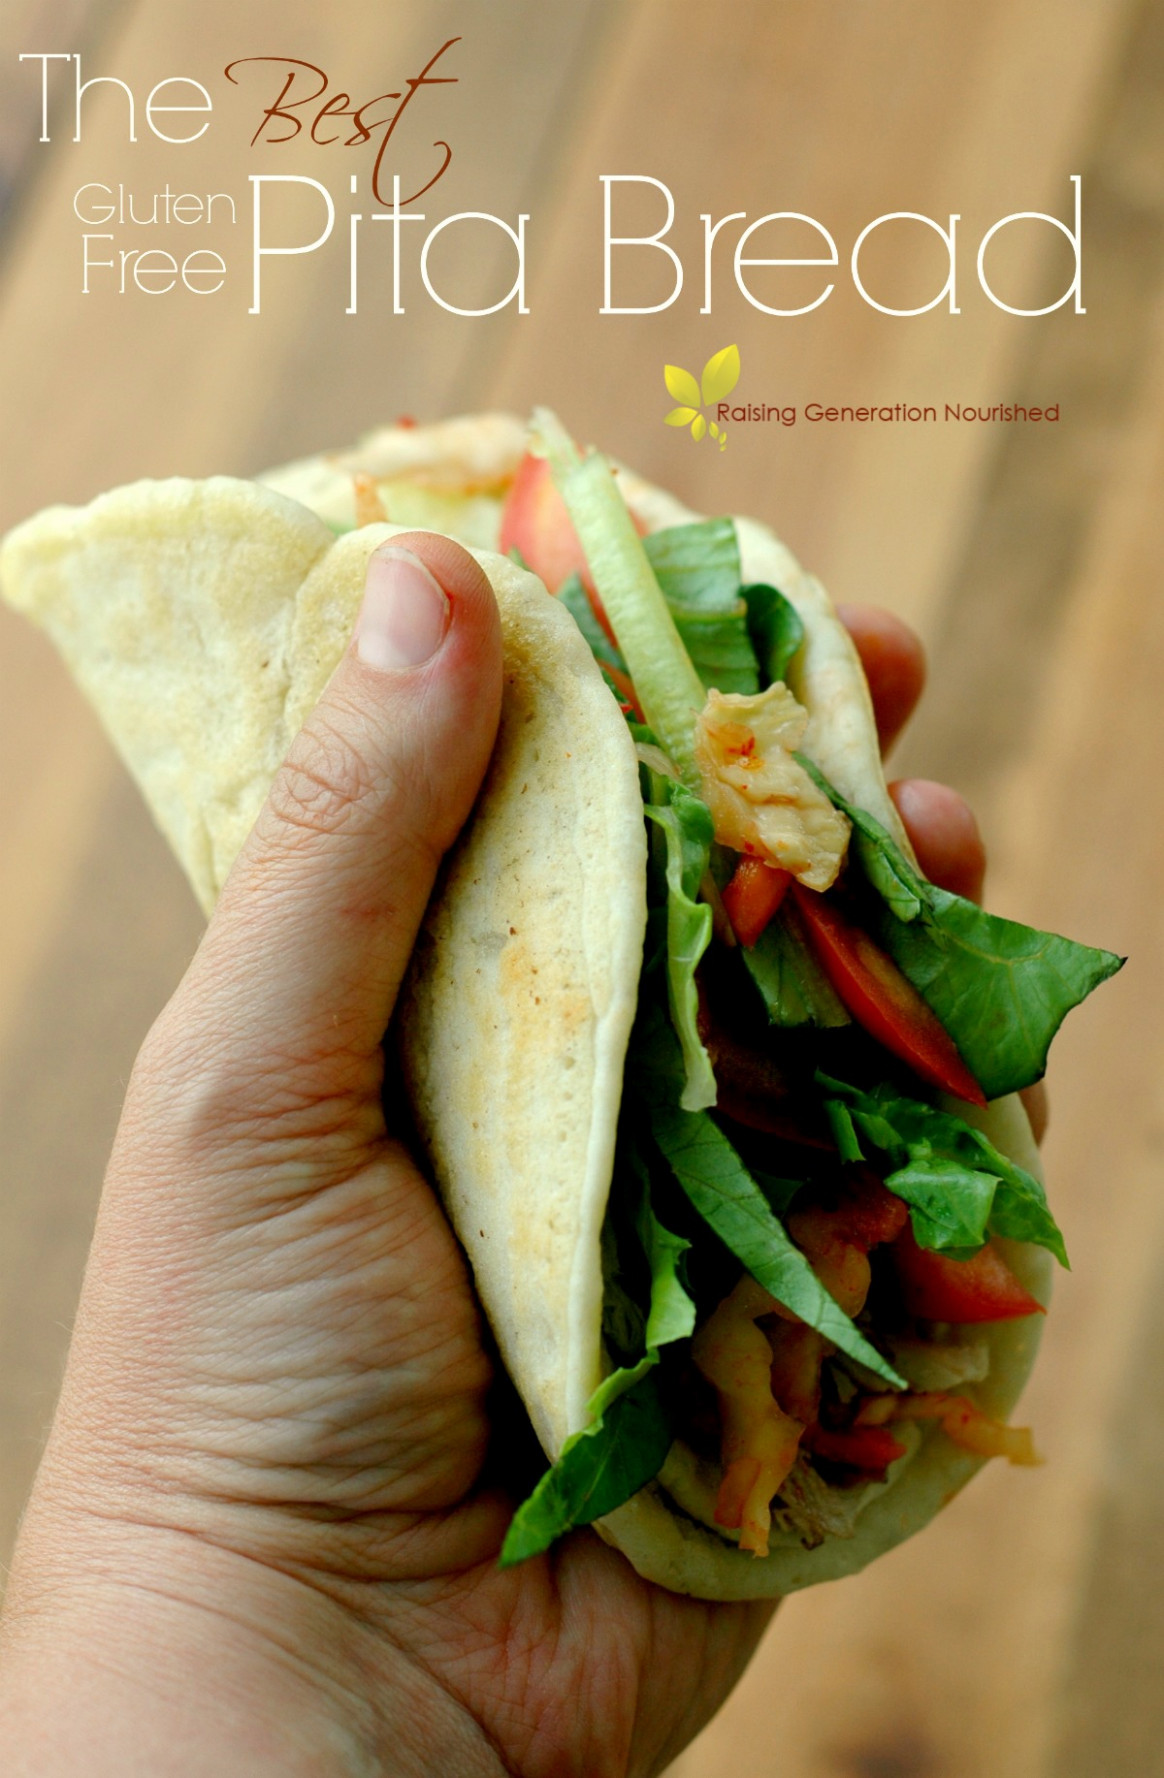 Gluten Free Pita Bread - food recipes using xanthan gum